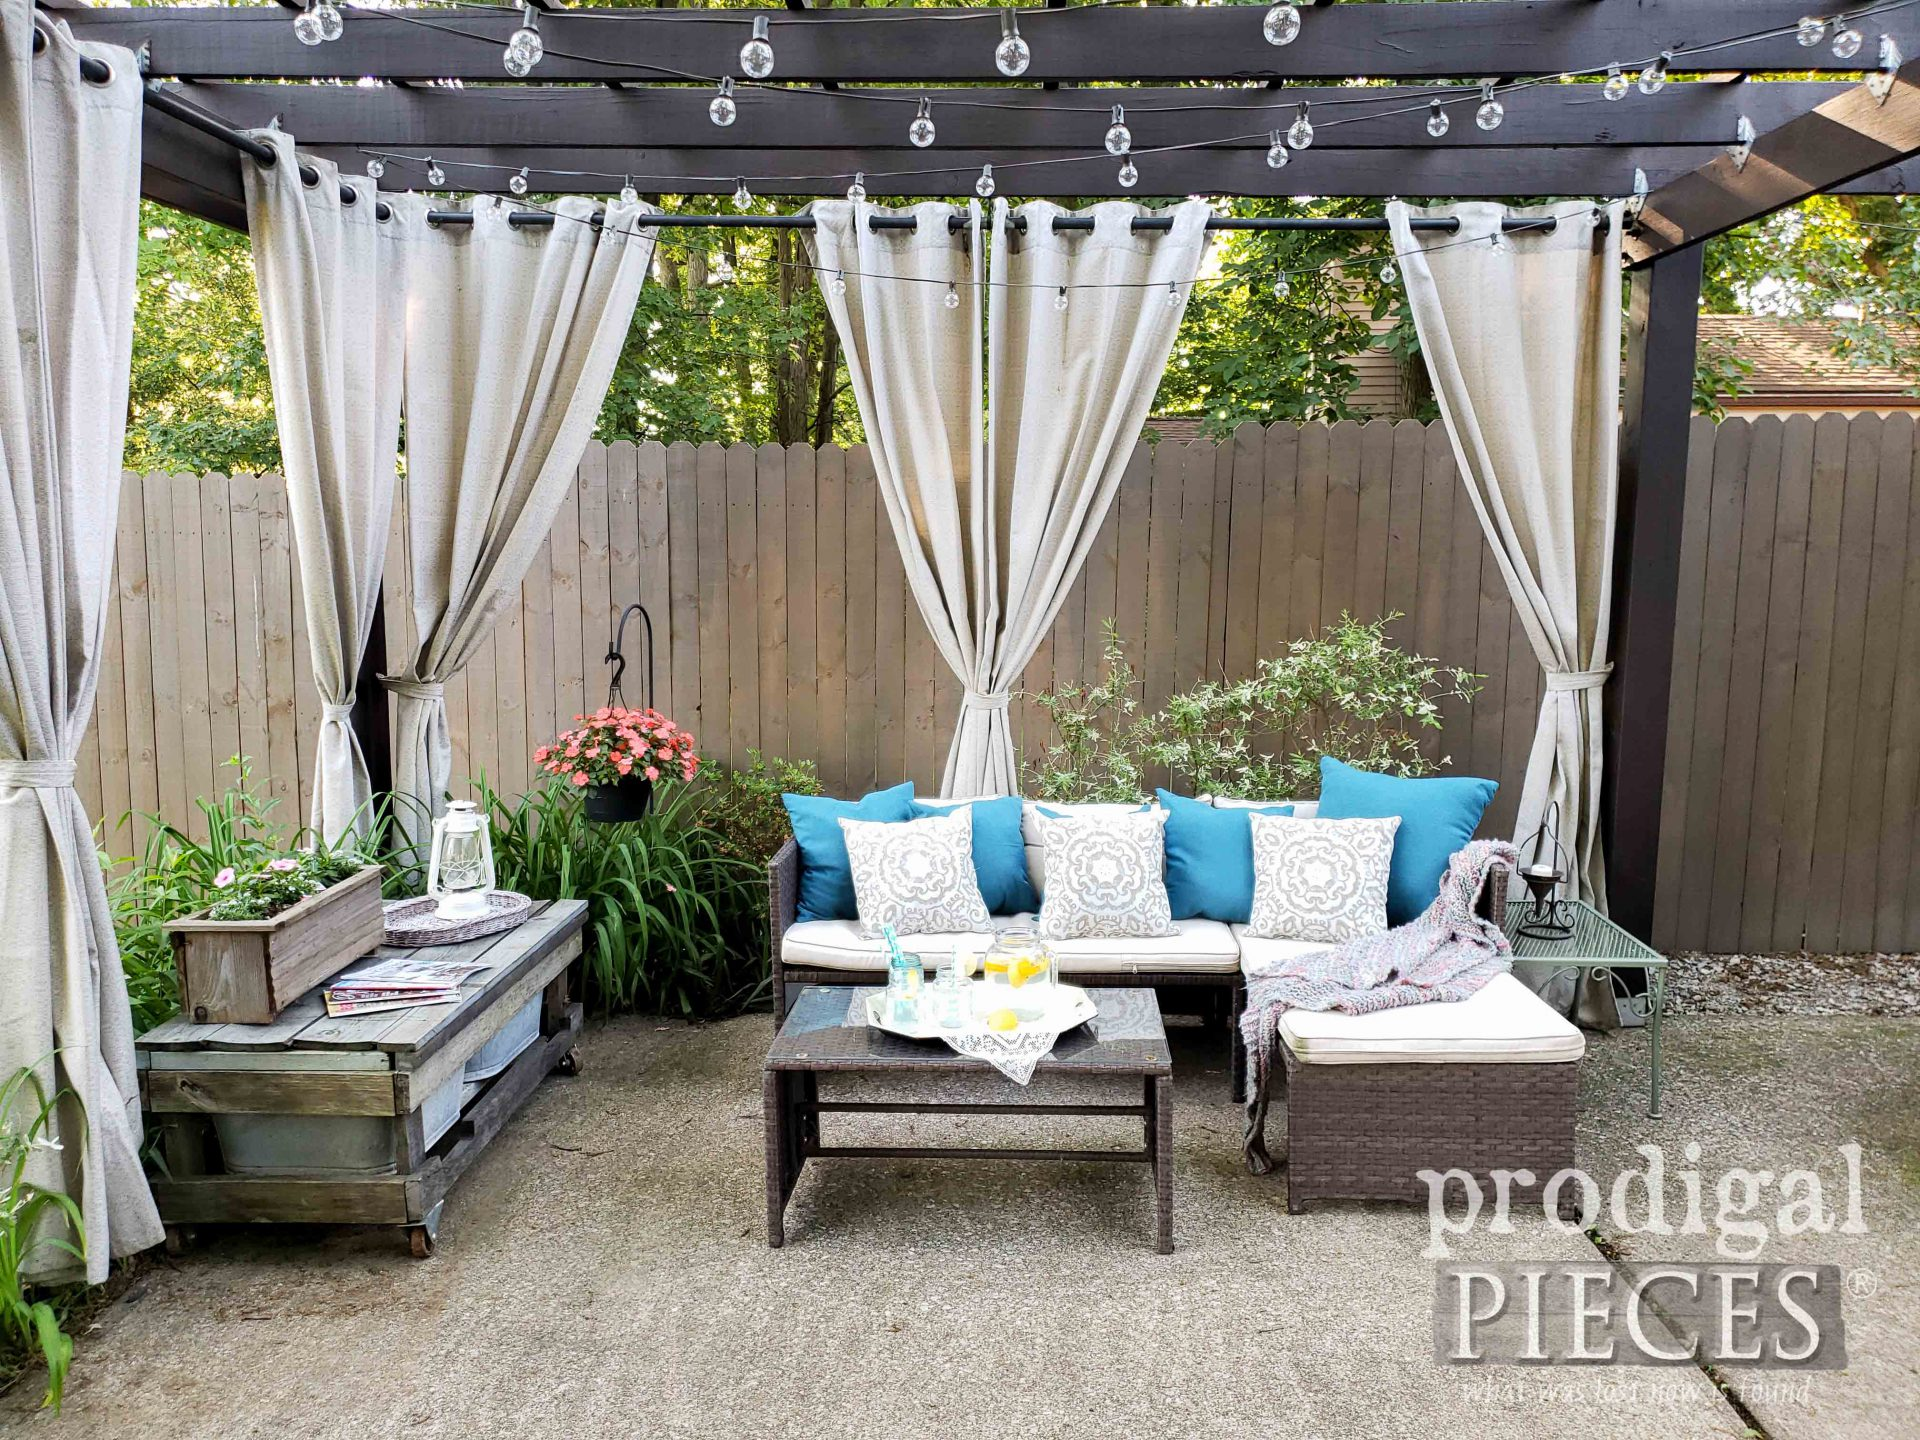 DIY Patio Decor by Prodigal Pieces | prodigalpieces.com #prodigalpieces #patio #diy #home #homedecor